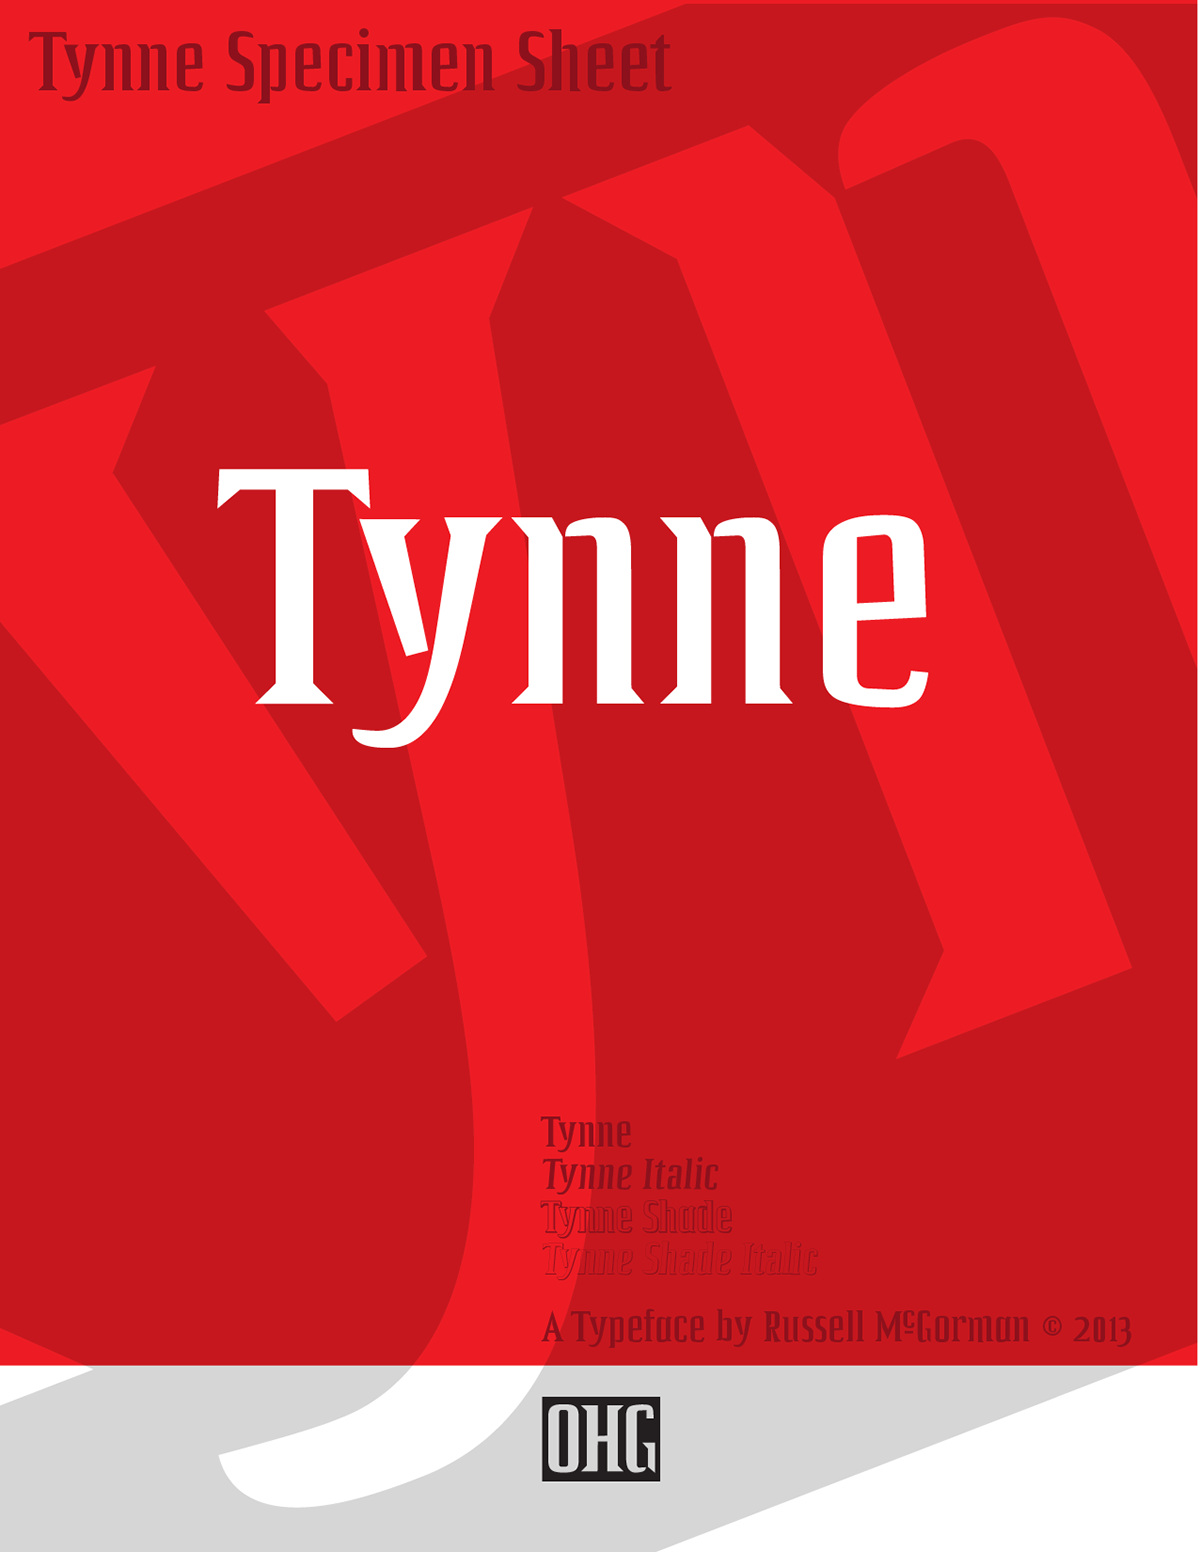 Tynne, a new Typeface from Russell McGorman